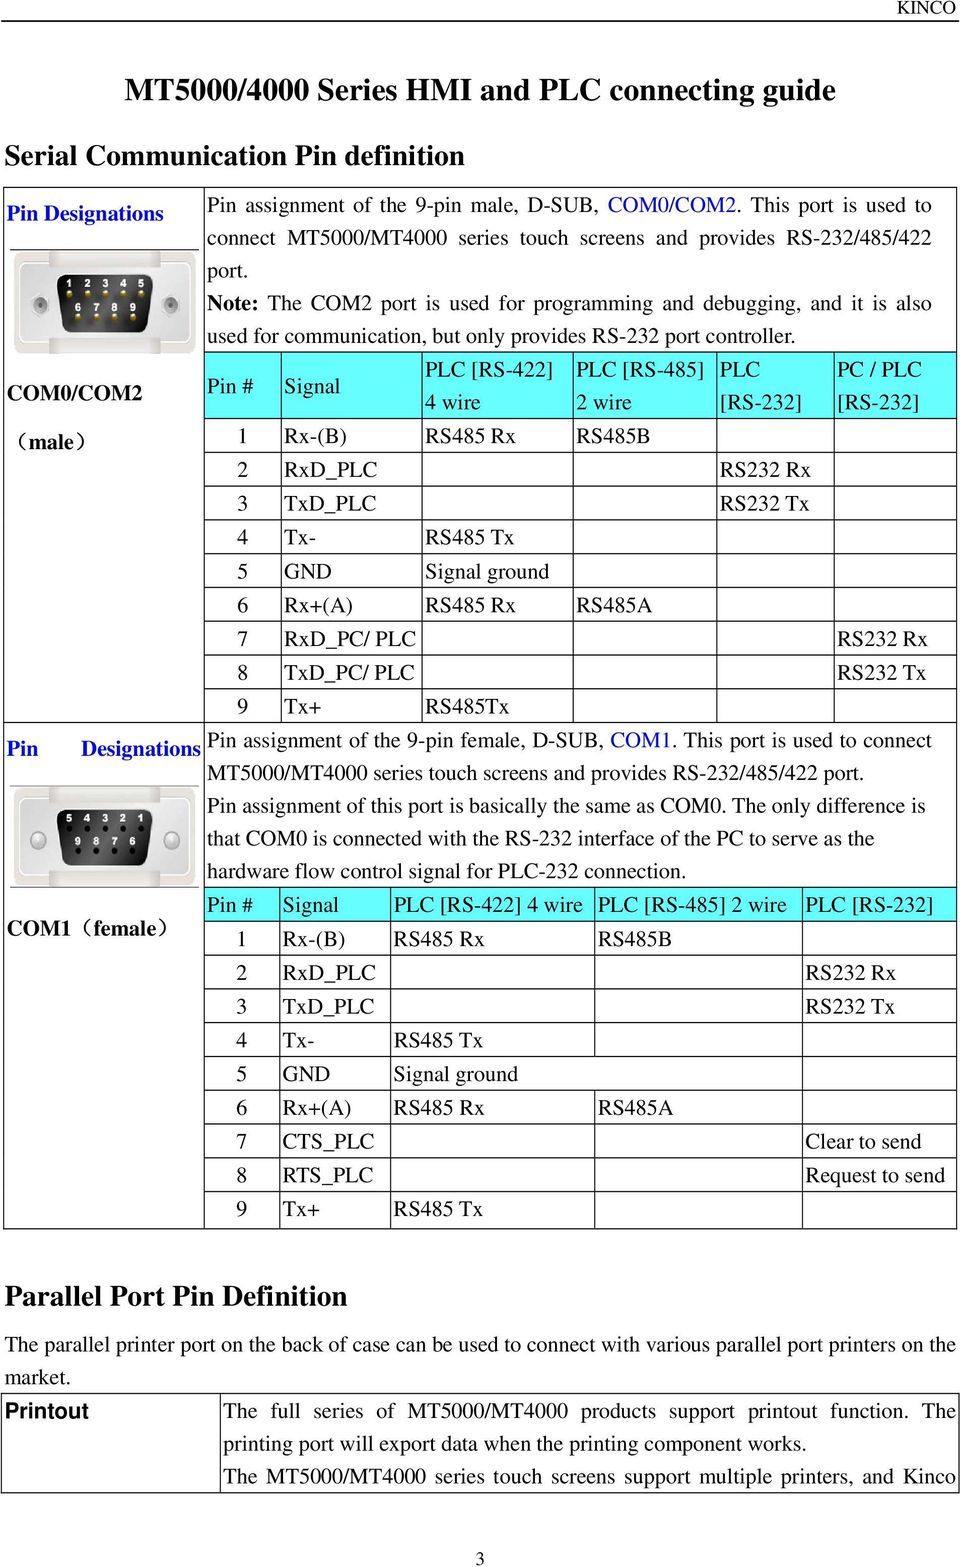 CONTENTS MT5000/4000 SERIES HMI AND PLC CONNECTING GUIDE PDF